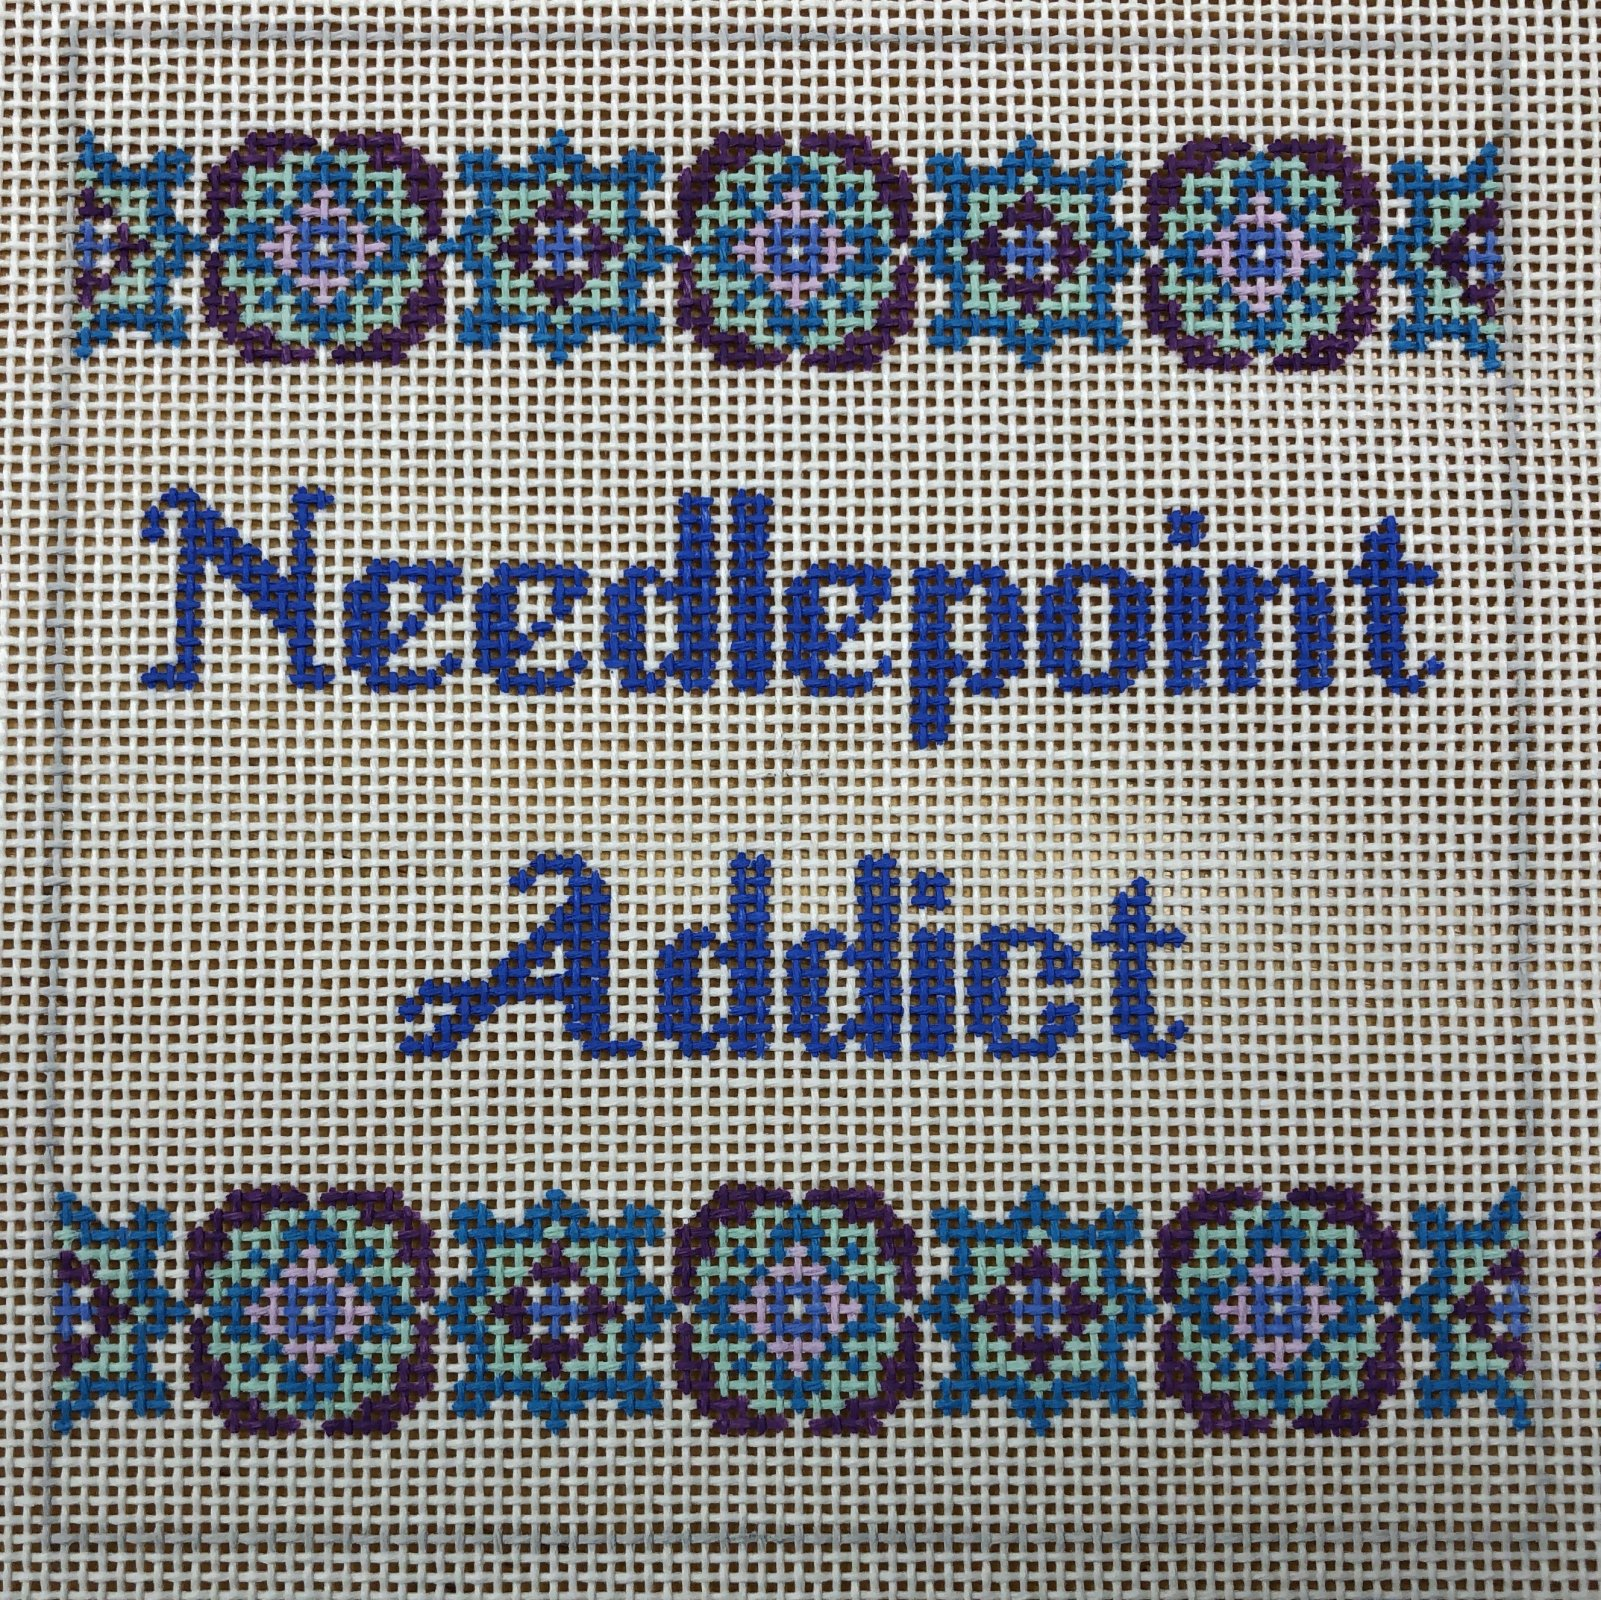 needlepoint addict